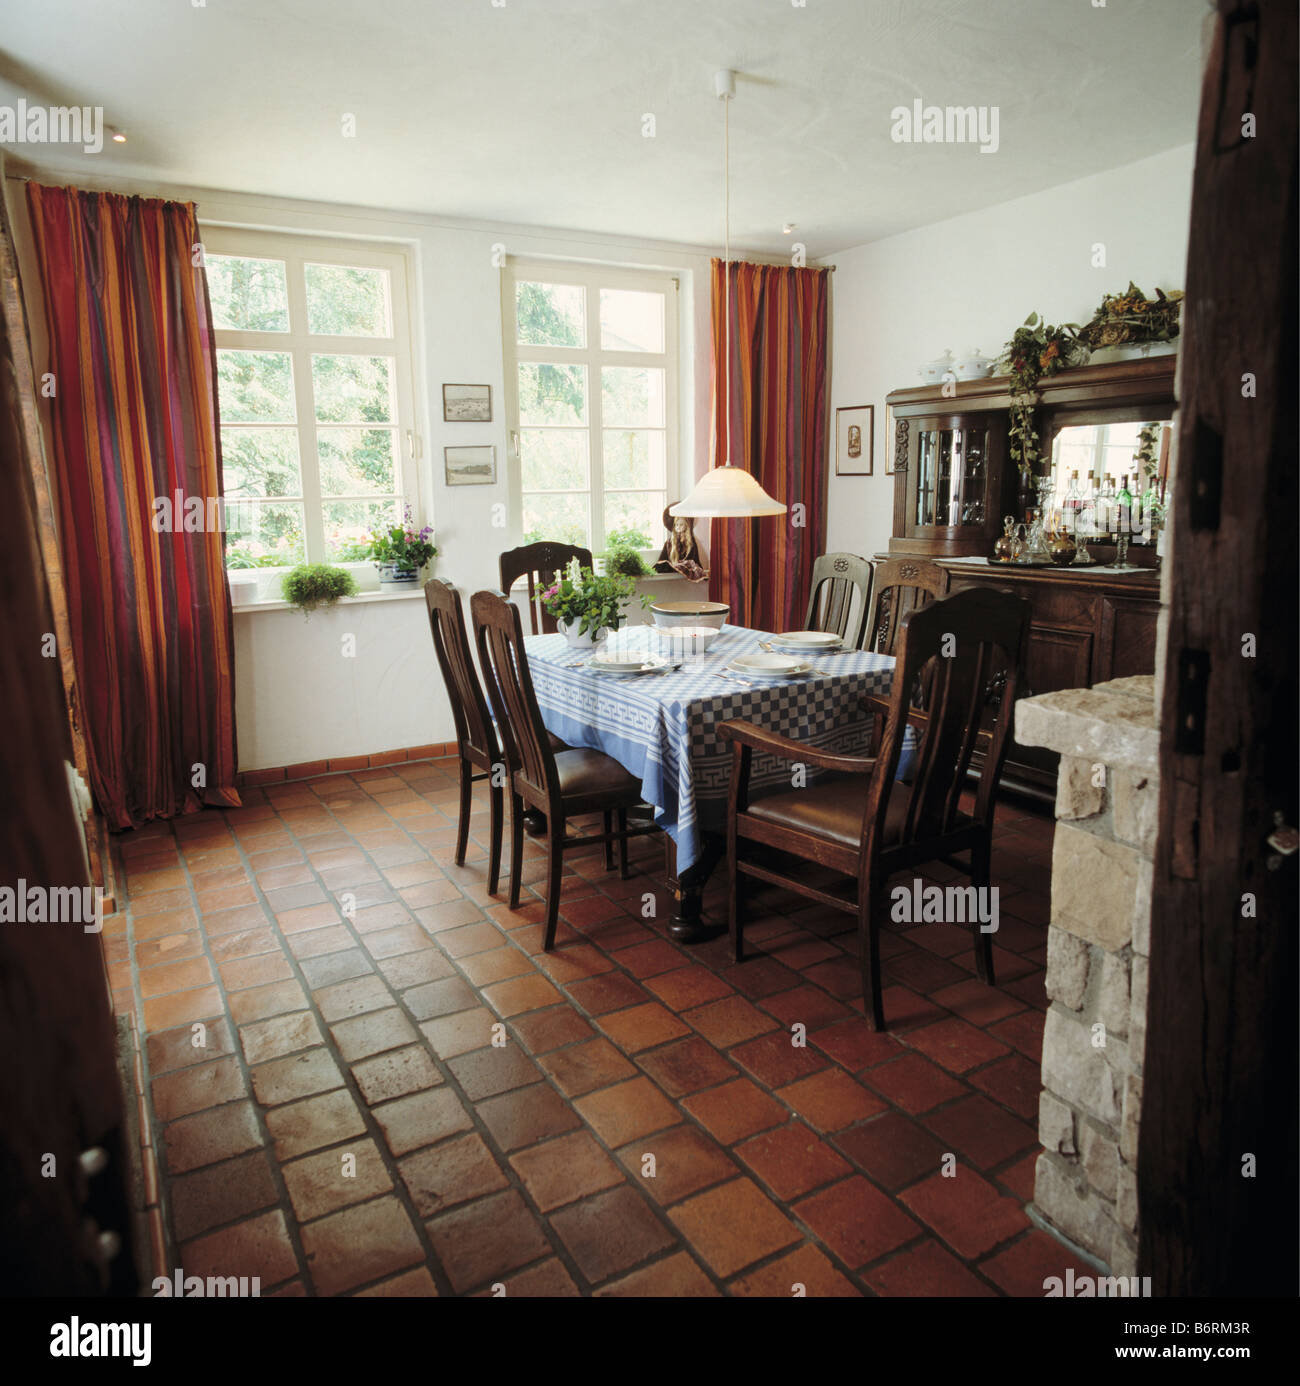 Exceptionnel Terracotta Tiled Floor In Country Dining Room With Red Curtains And Table  With Blue Cloth